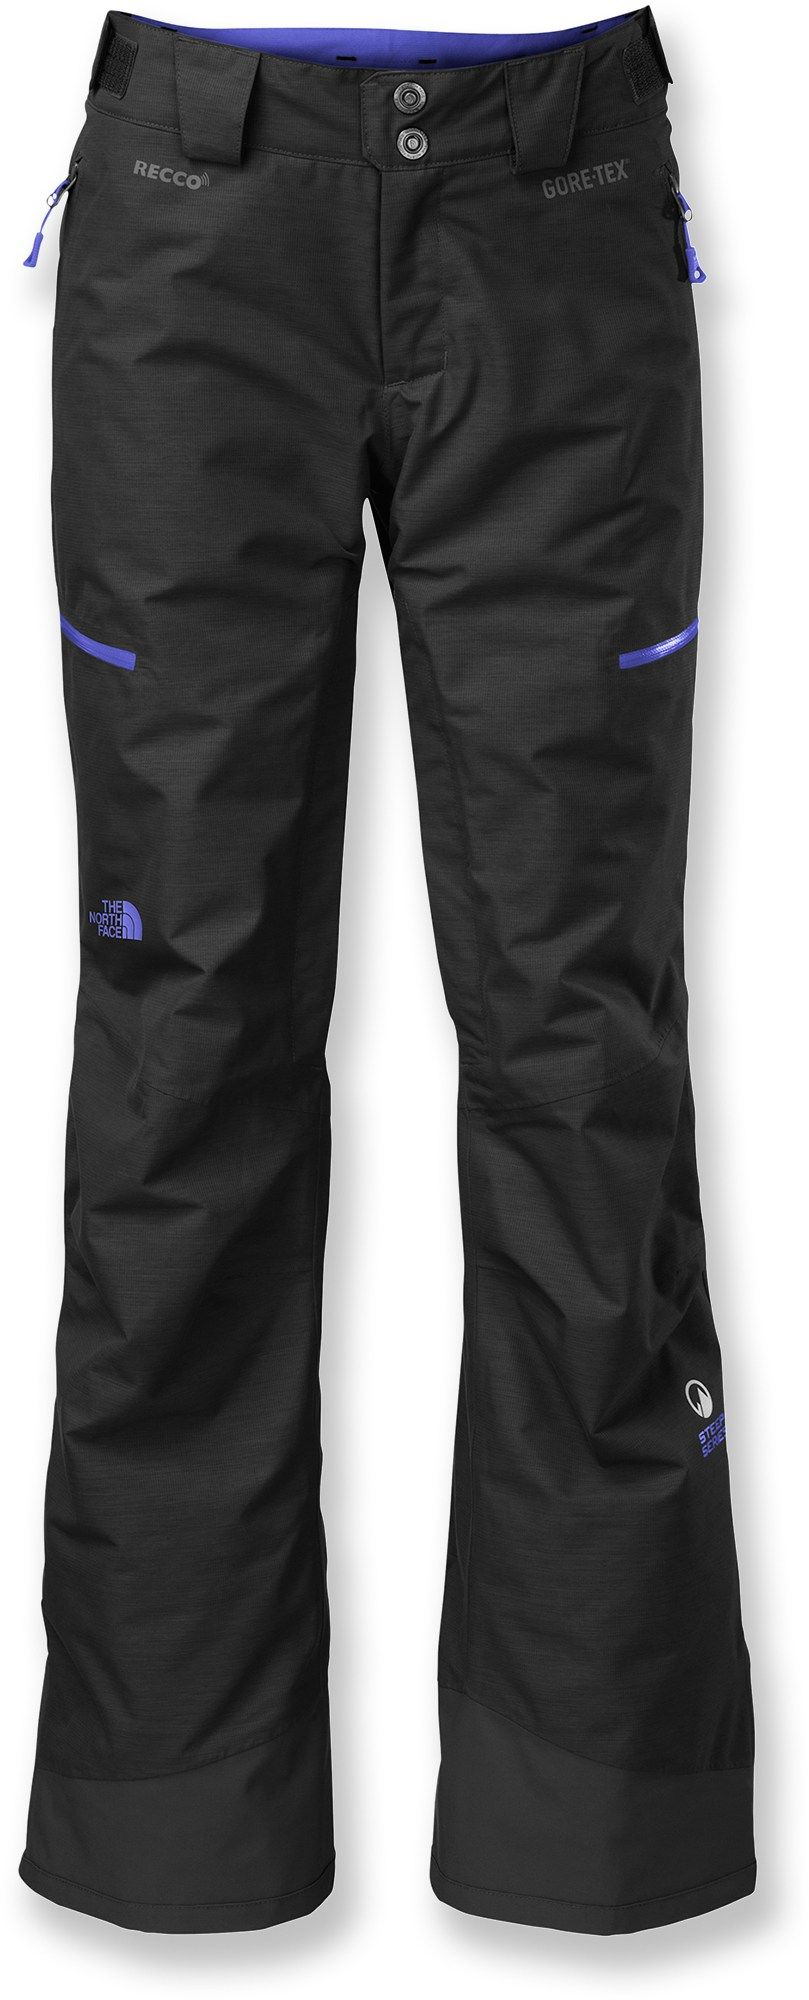 The North Face Female Nfz Insulated Snow Pants Women S Pants For Women Pants Ski Pants